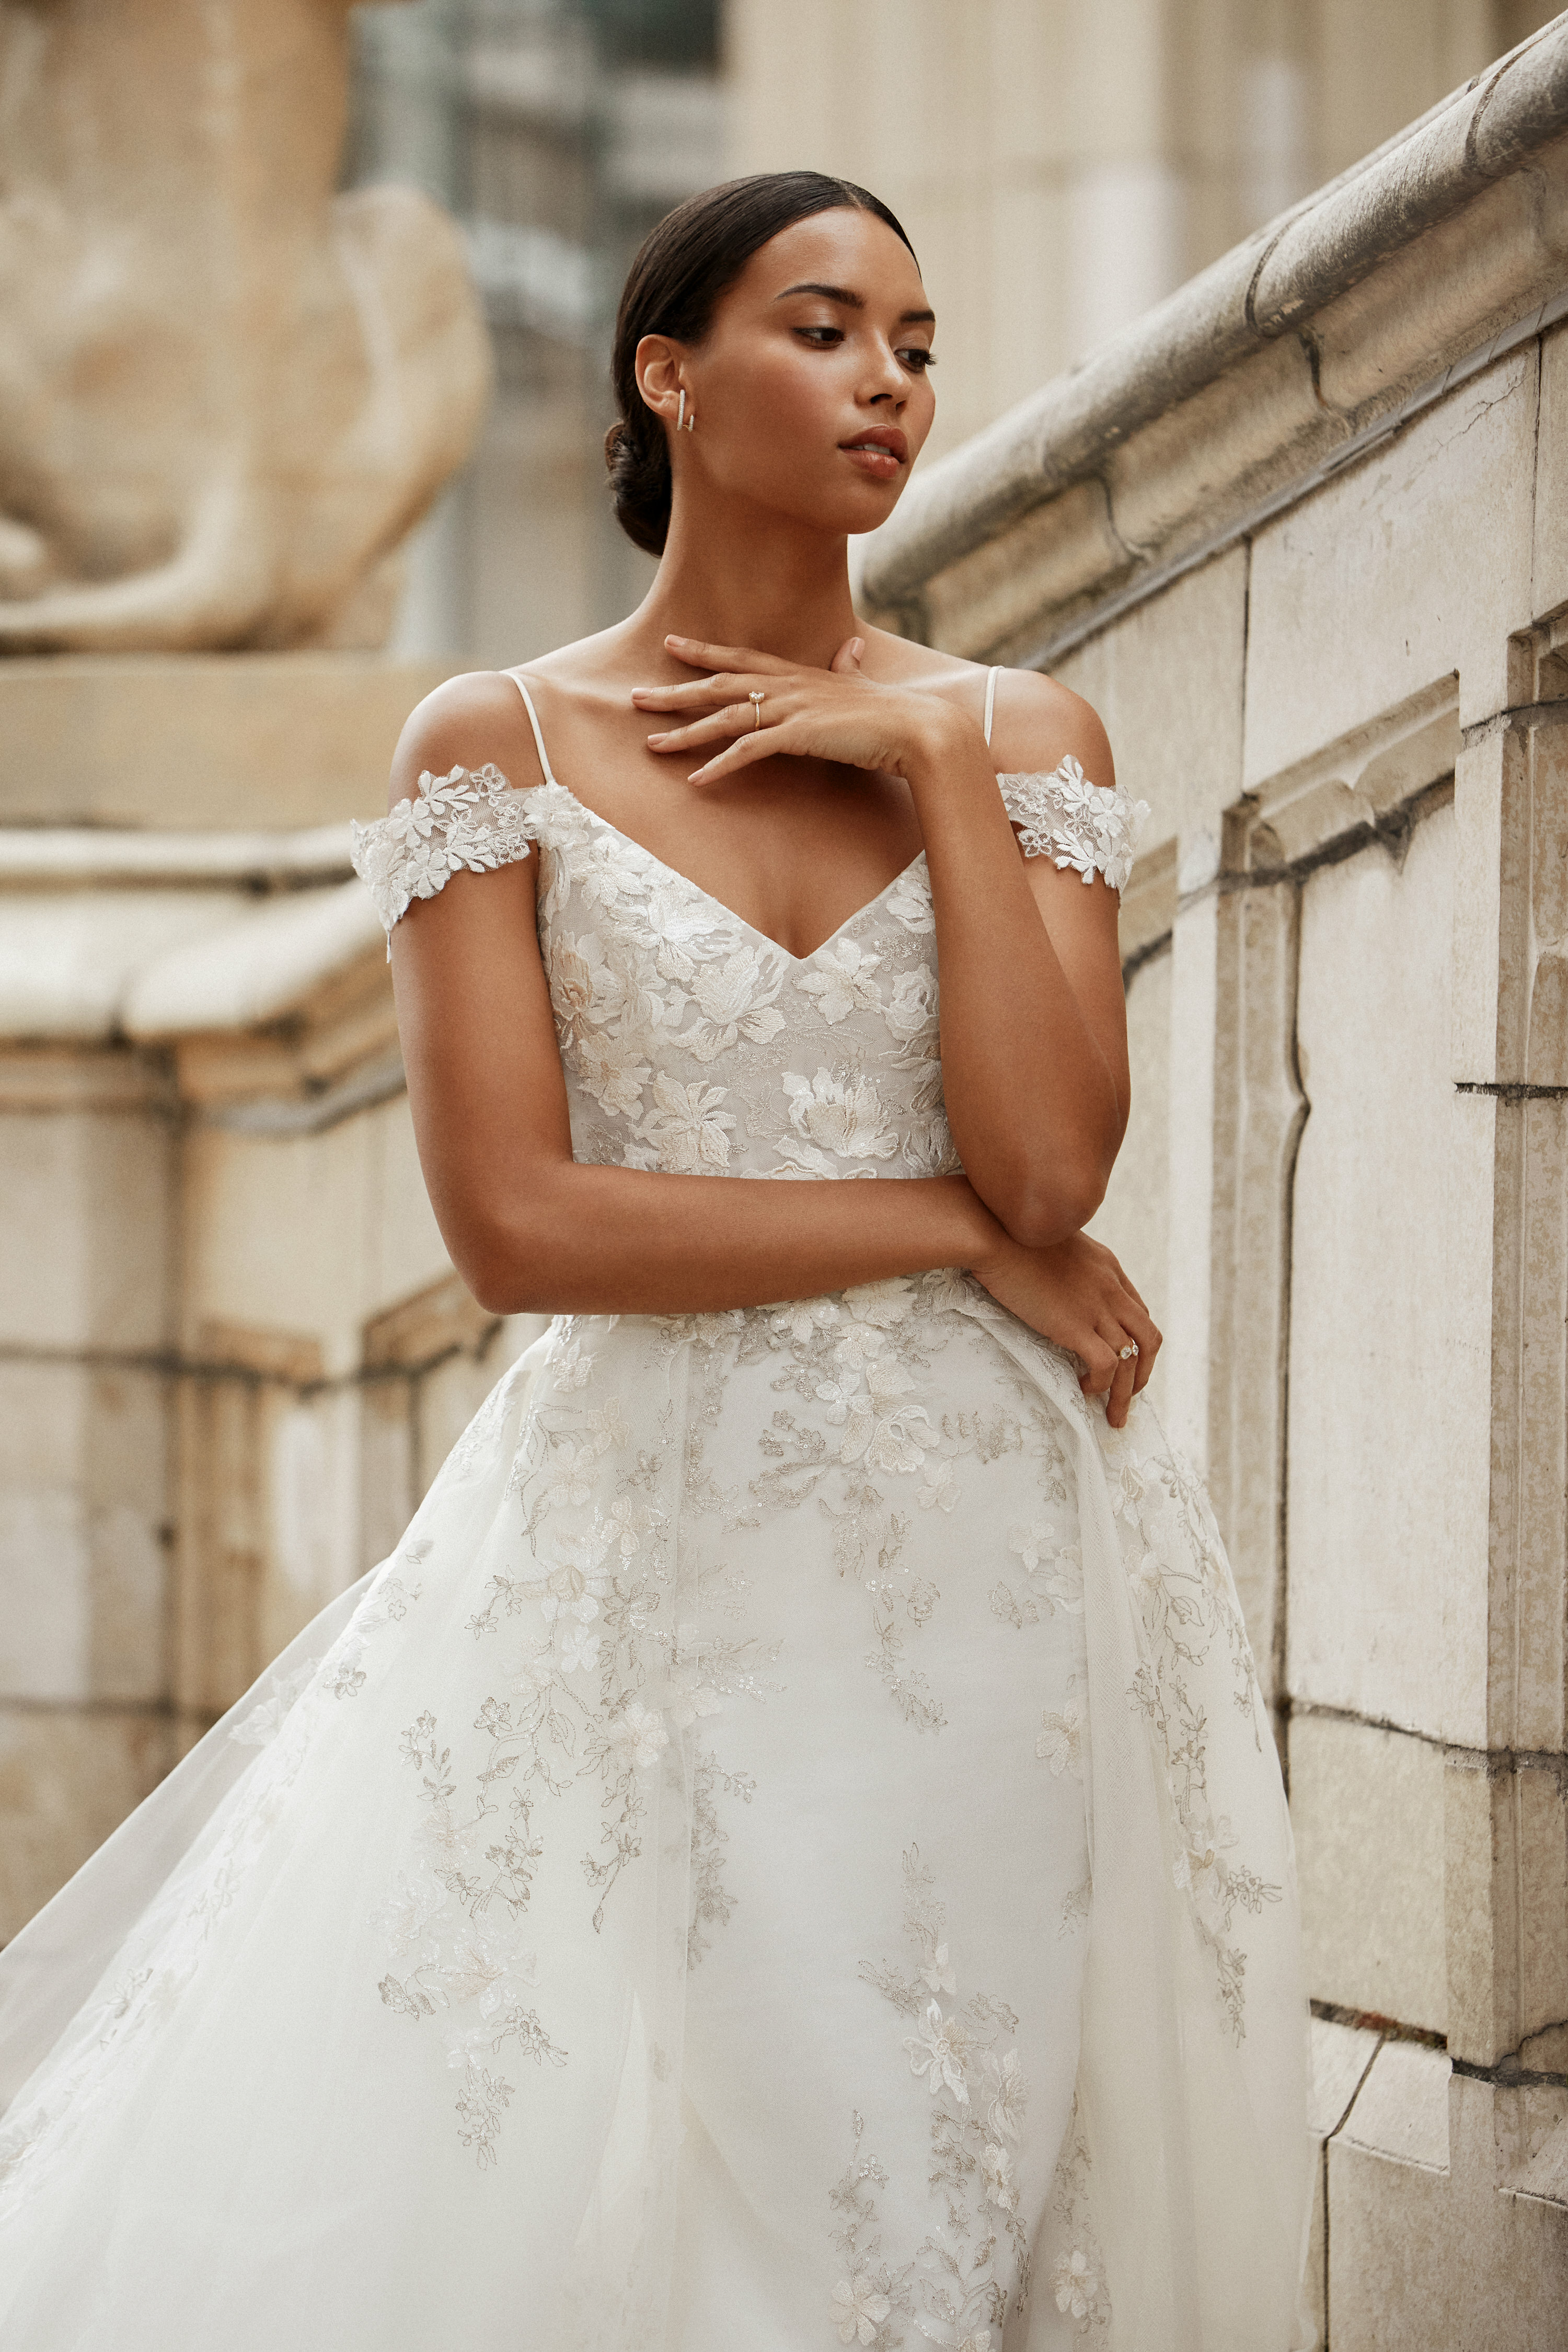 Ivory floral embroidered two-piece gown, strapless sweetheart neckline, off the shoulder sheer cap sleeve, corset bodice, natural waist, trumpet skirt with sweep train. Detachable tulle skirt with cascading floral appliques starting at waist, horsehair trim at hemline, chapel train.